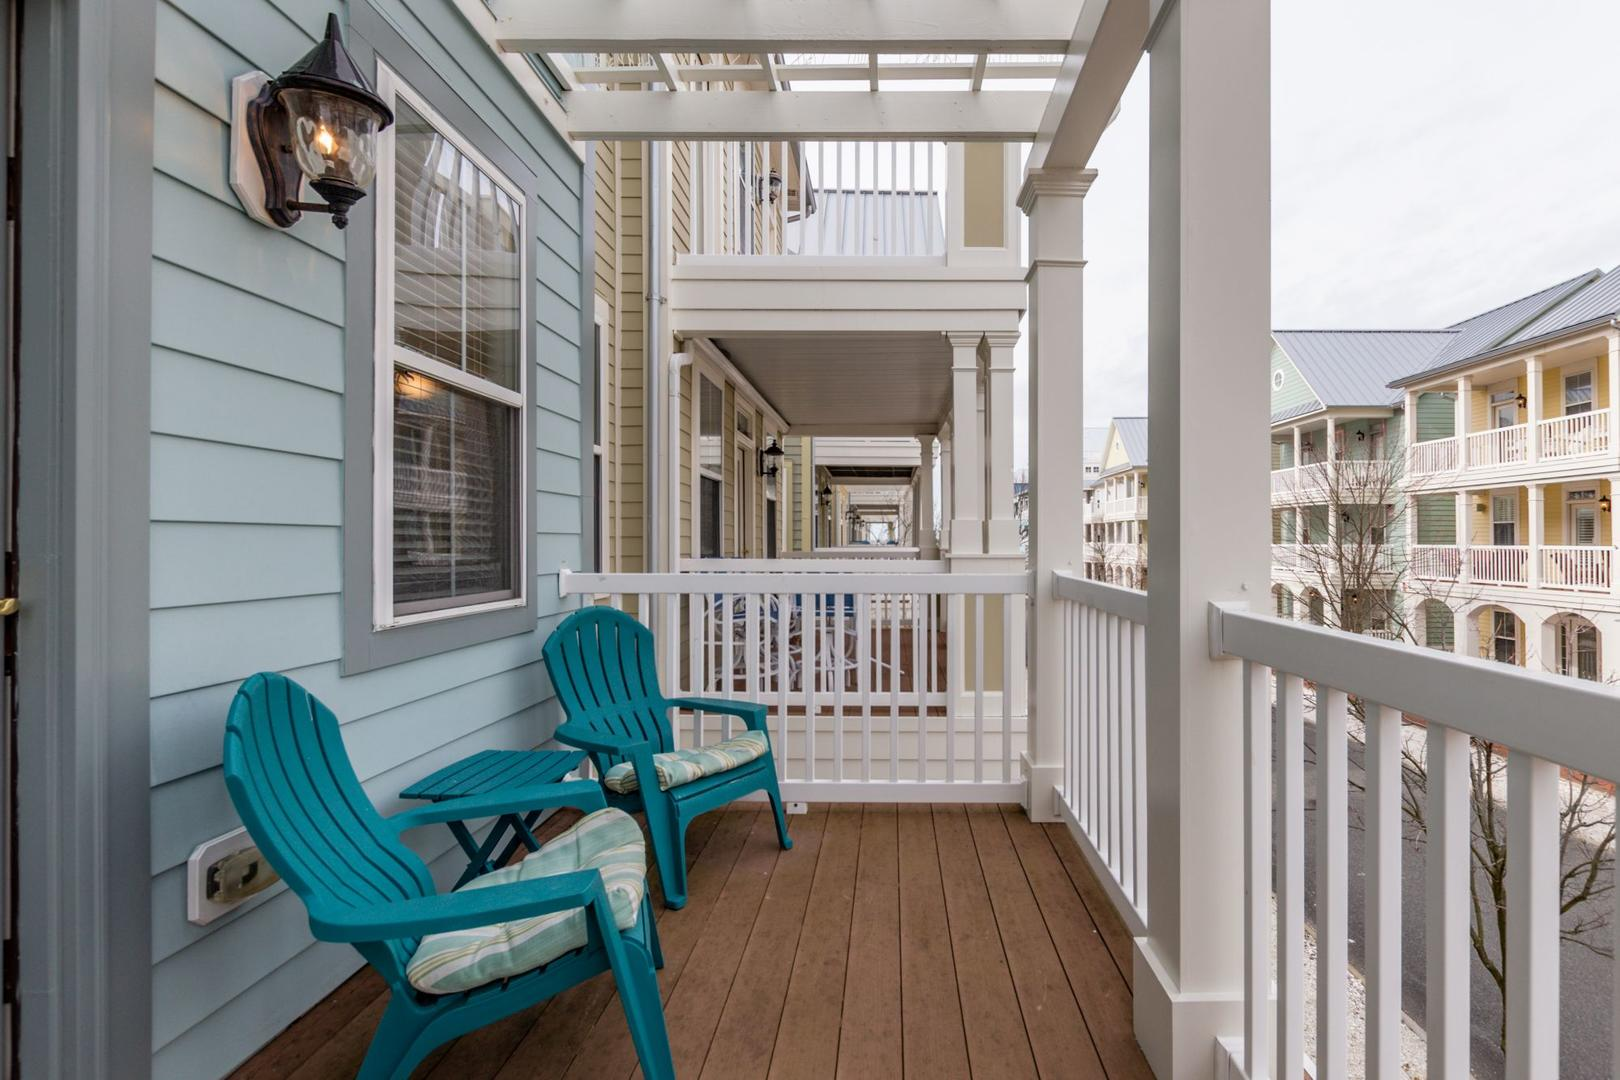 Sunset Island 35 Seaside Dr. - 2nd Floor Balcony